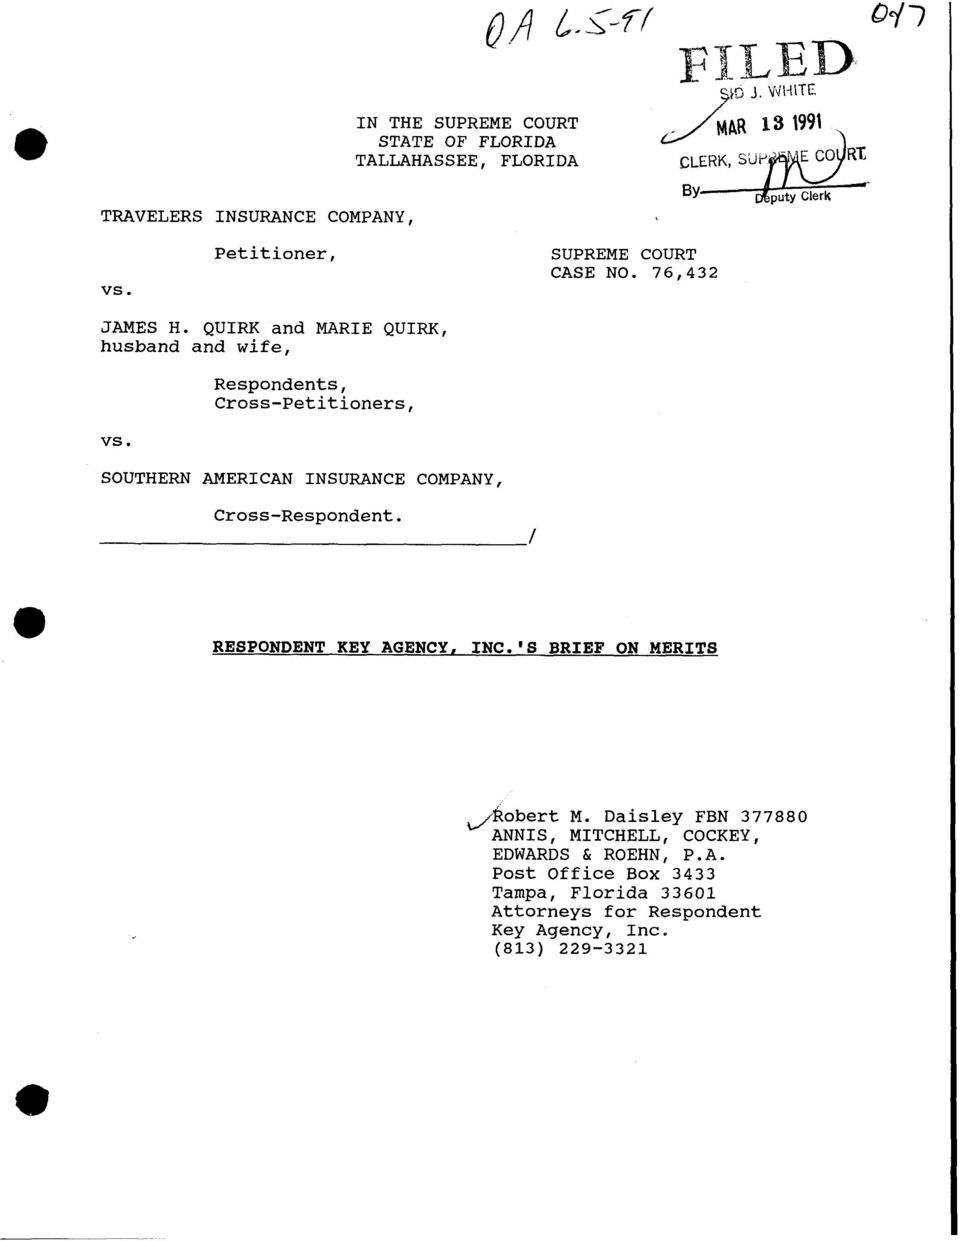 COMPANY, BY SUPREME COURT CASE NO. 76,432 Cross-Respondent. I RESPONDENT KEY AGENCY, INC.'S BRIEF ON MERITS Jkobert M.